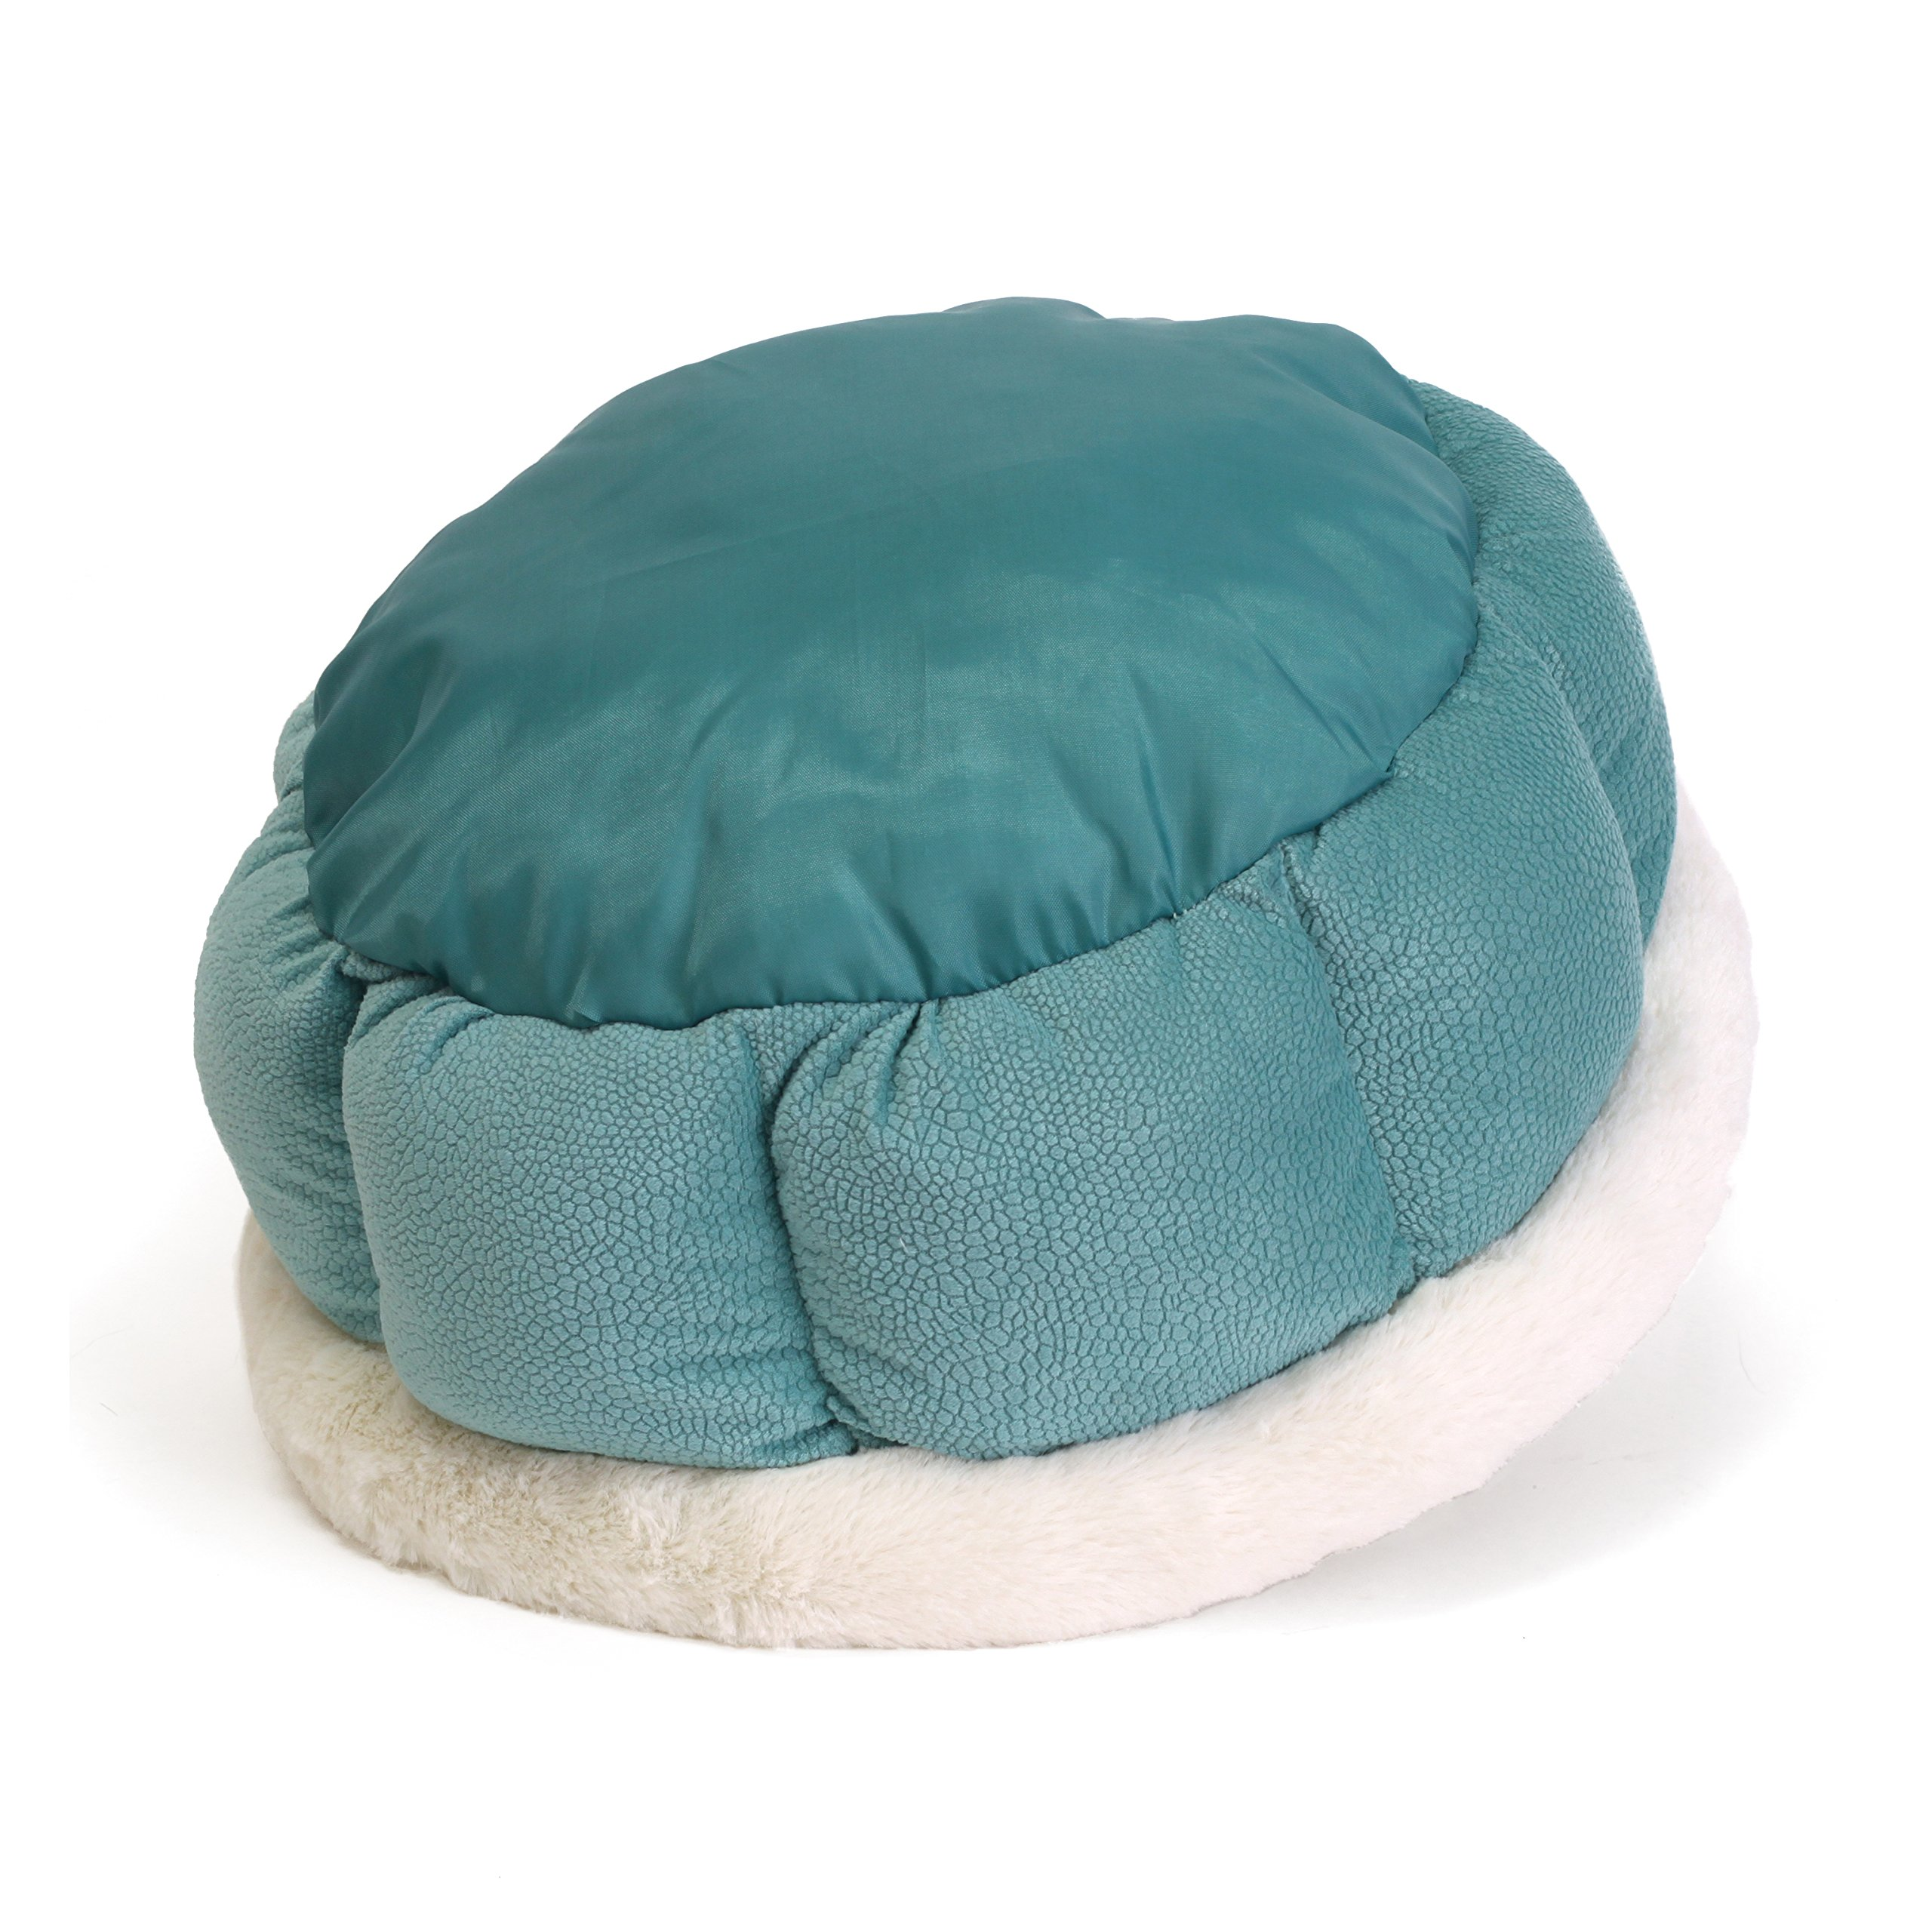 Best Friends by Sheri Small Cuddle Cup - Cozy, Comfortable Cat and Dog House Bed - High-Walls for Improved Sleep, TidePool by Best Friends by Sheri (Image #7)